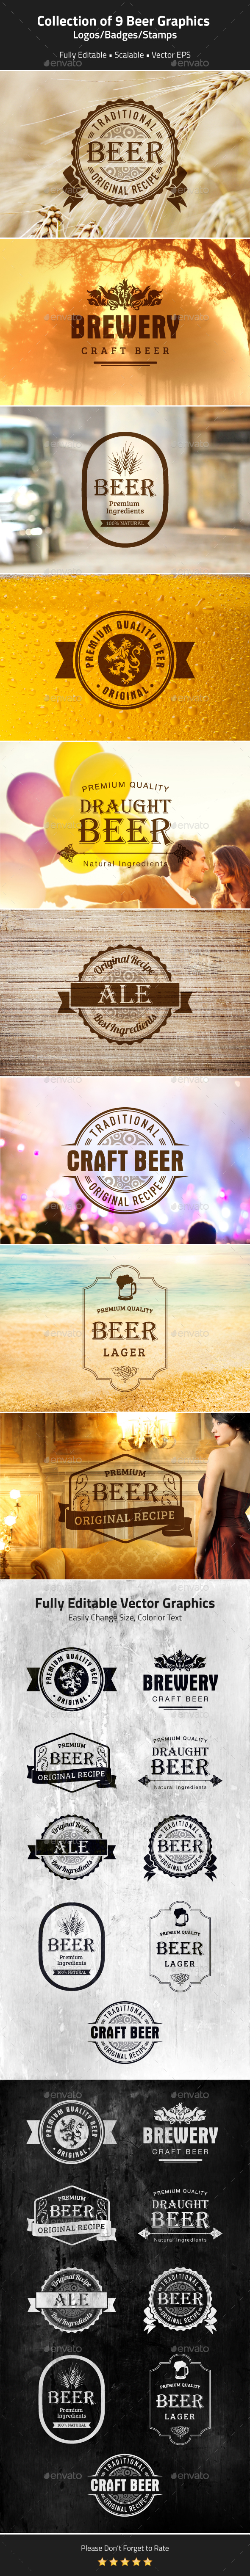 Beer Logos, Badges, Stamps - Badges & Stickers Web Elements